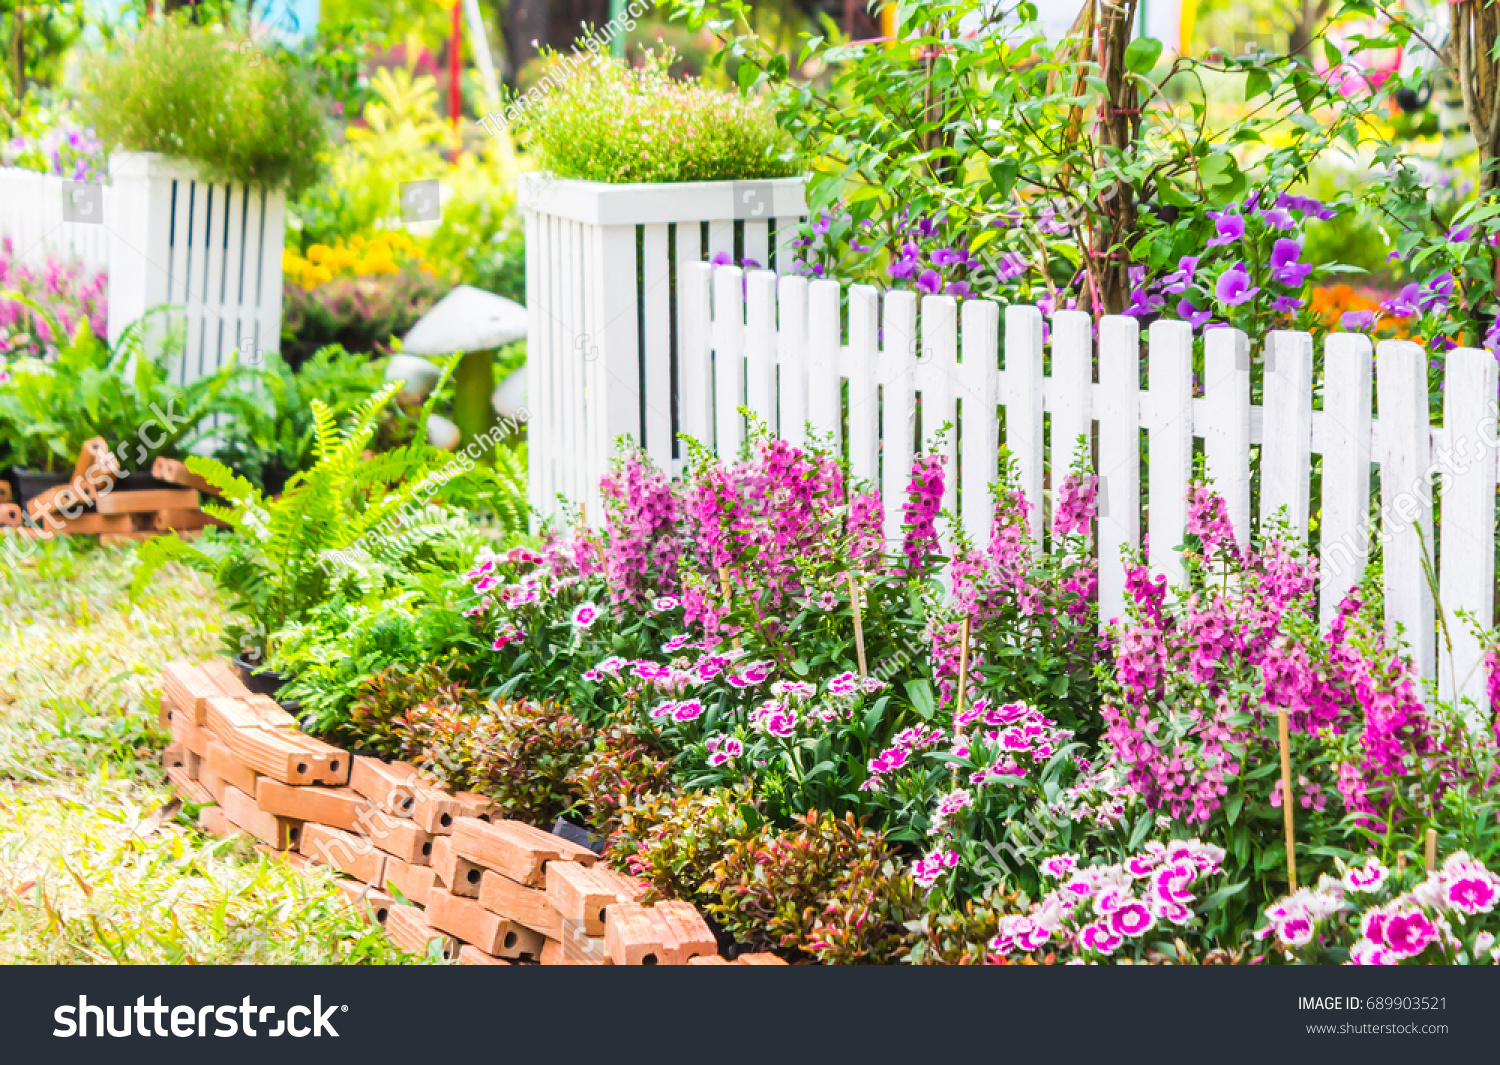 white picket fence surrounded by flowers stock photo (edit now